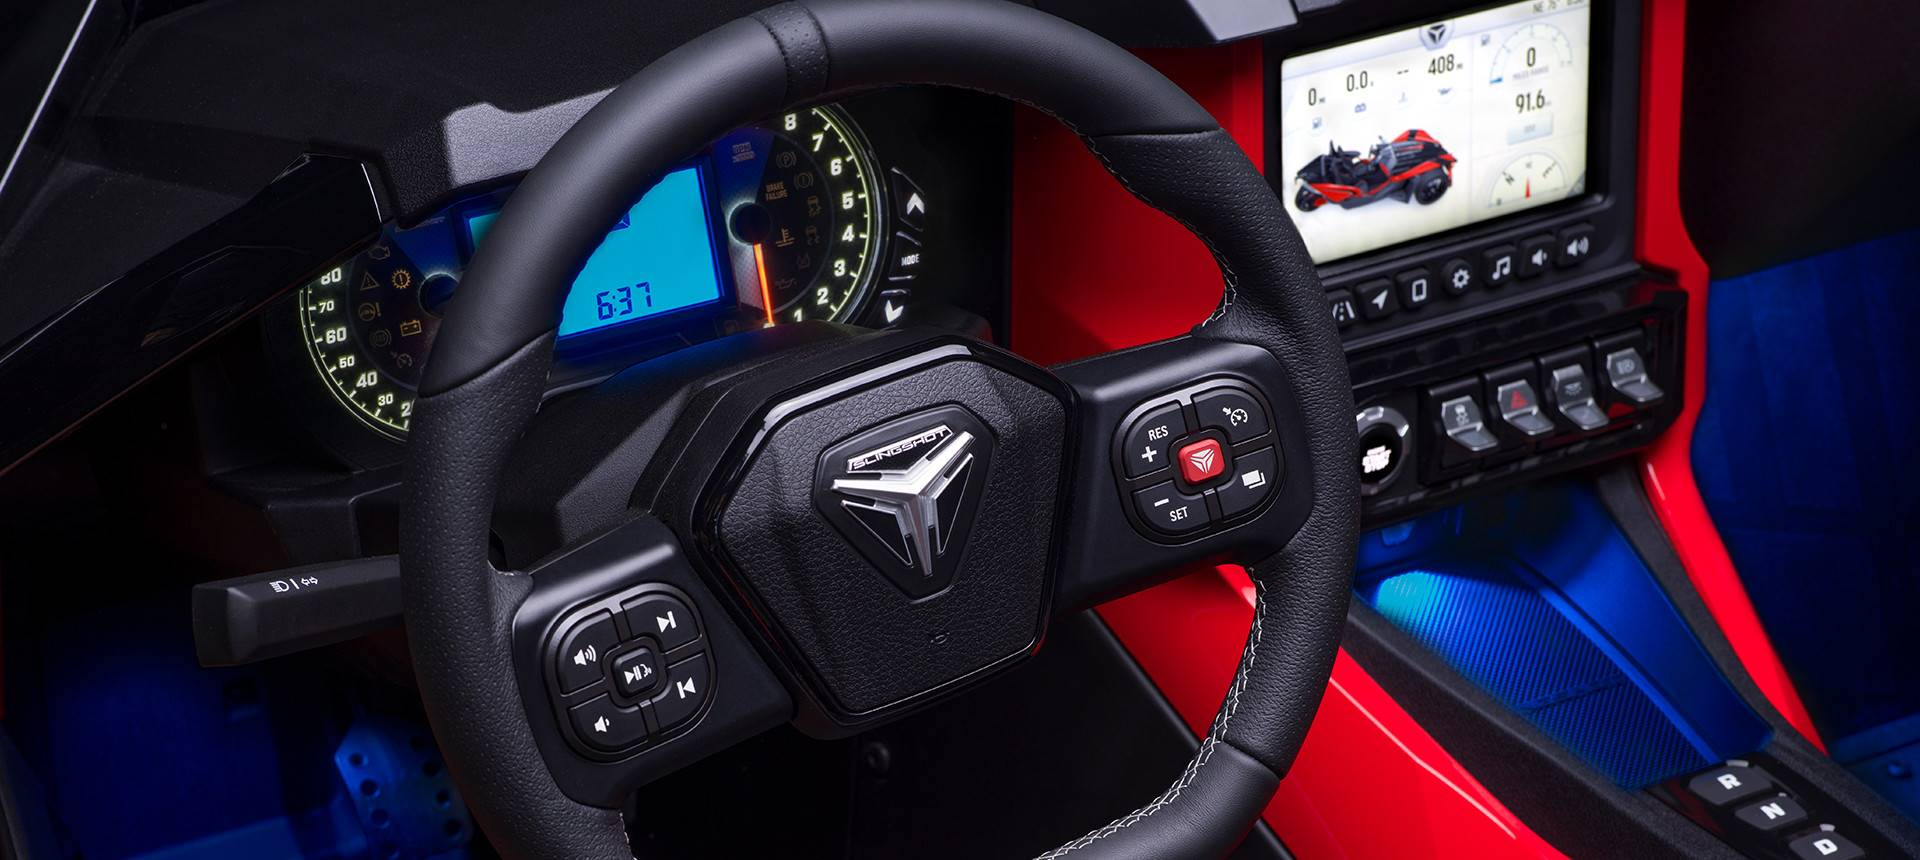 2020 Polaris SLINGSHOT in Panama City Beach, Florida - Photo 14